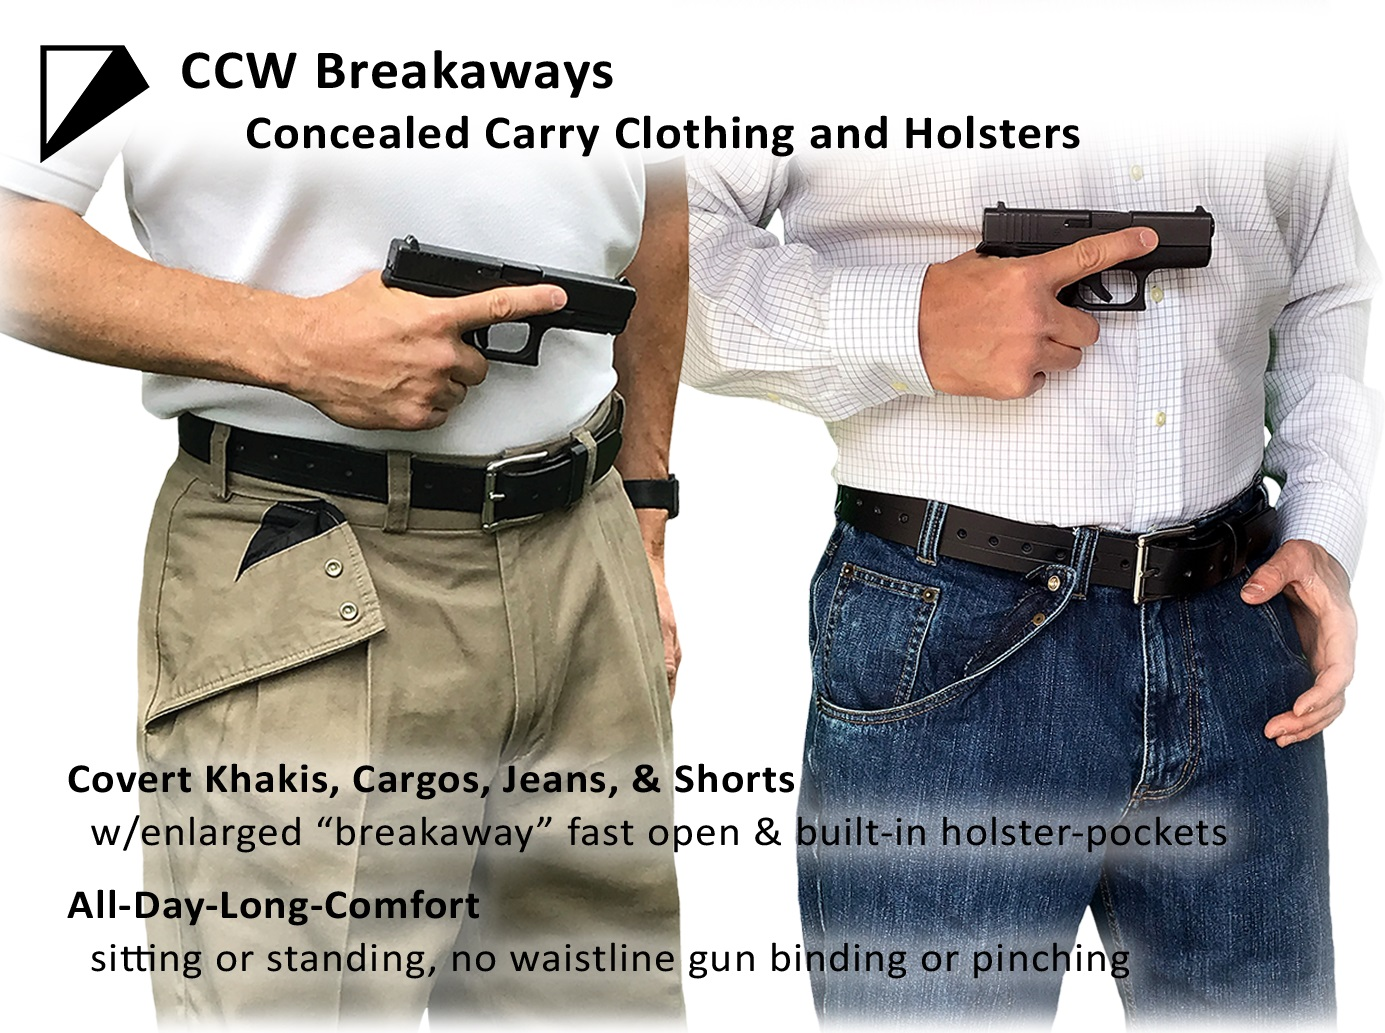 CCW Breakaways Concealed Carry Clothing and Holsters